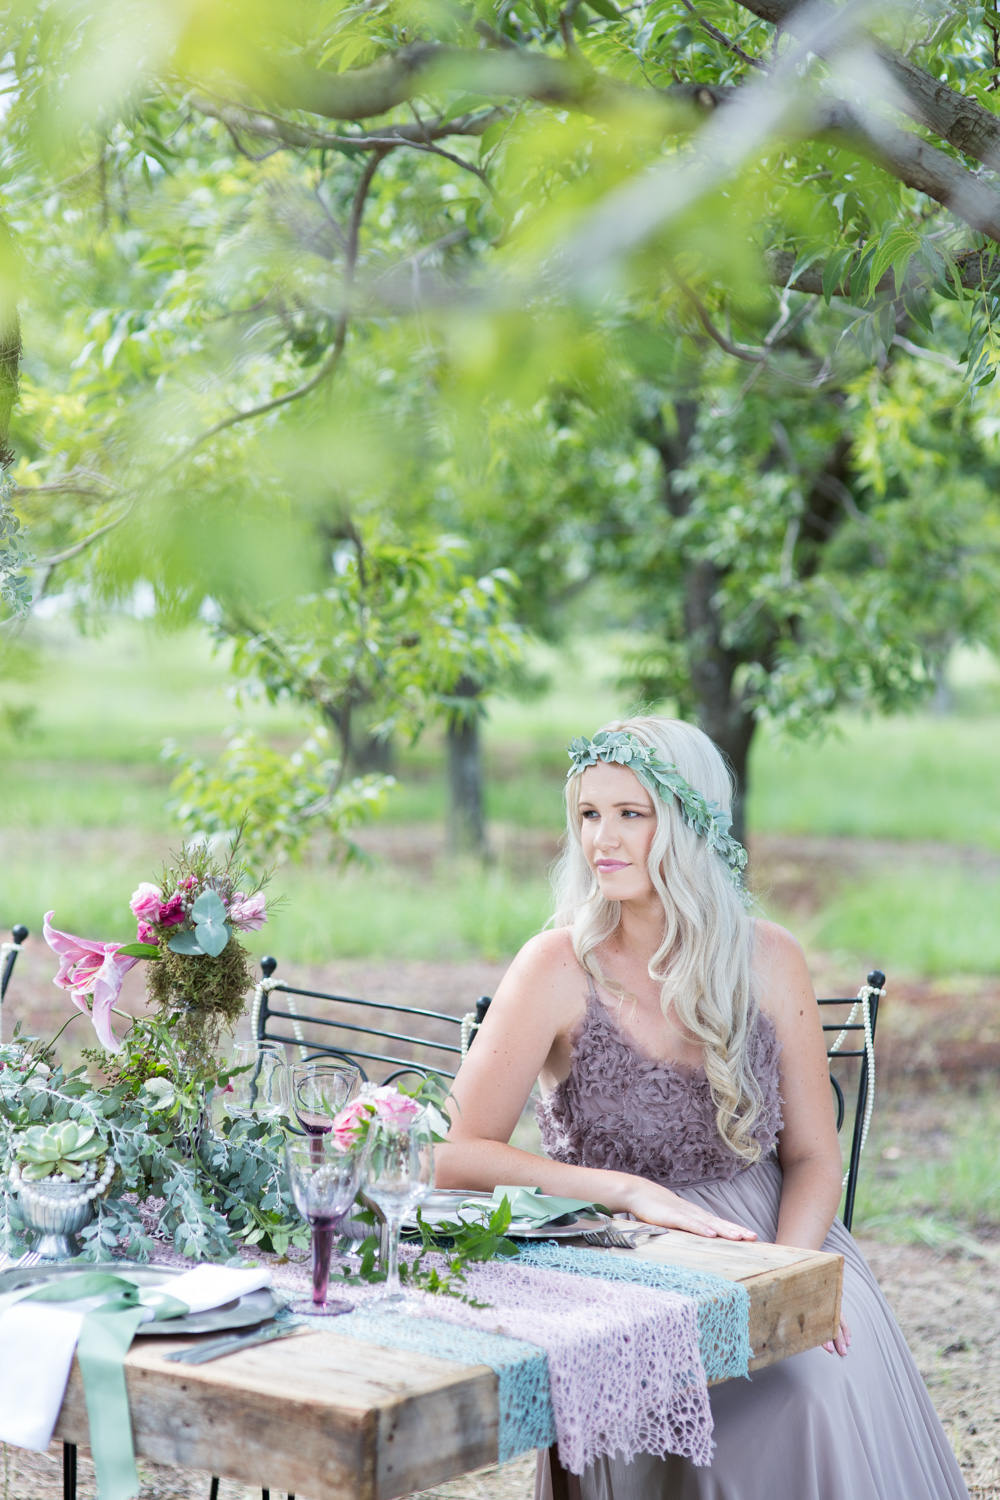 Shokran pretoria wedding venue shoot055.jpg